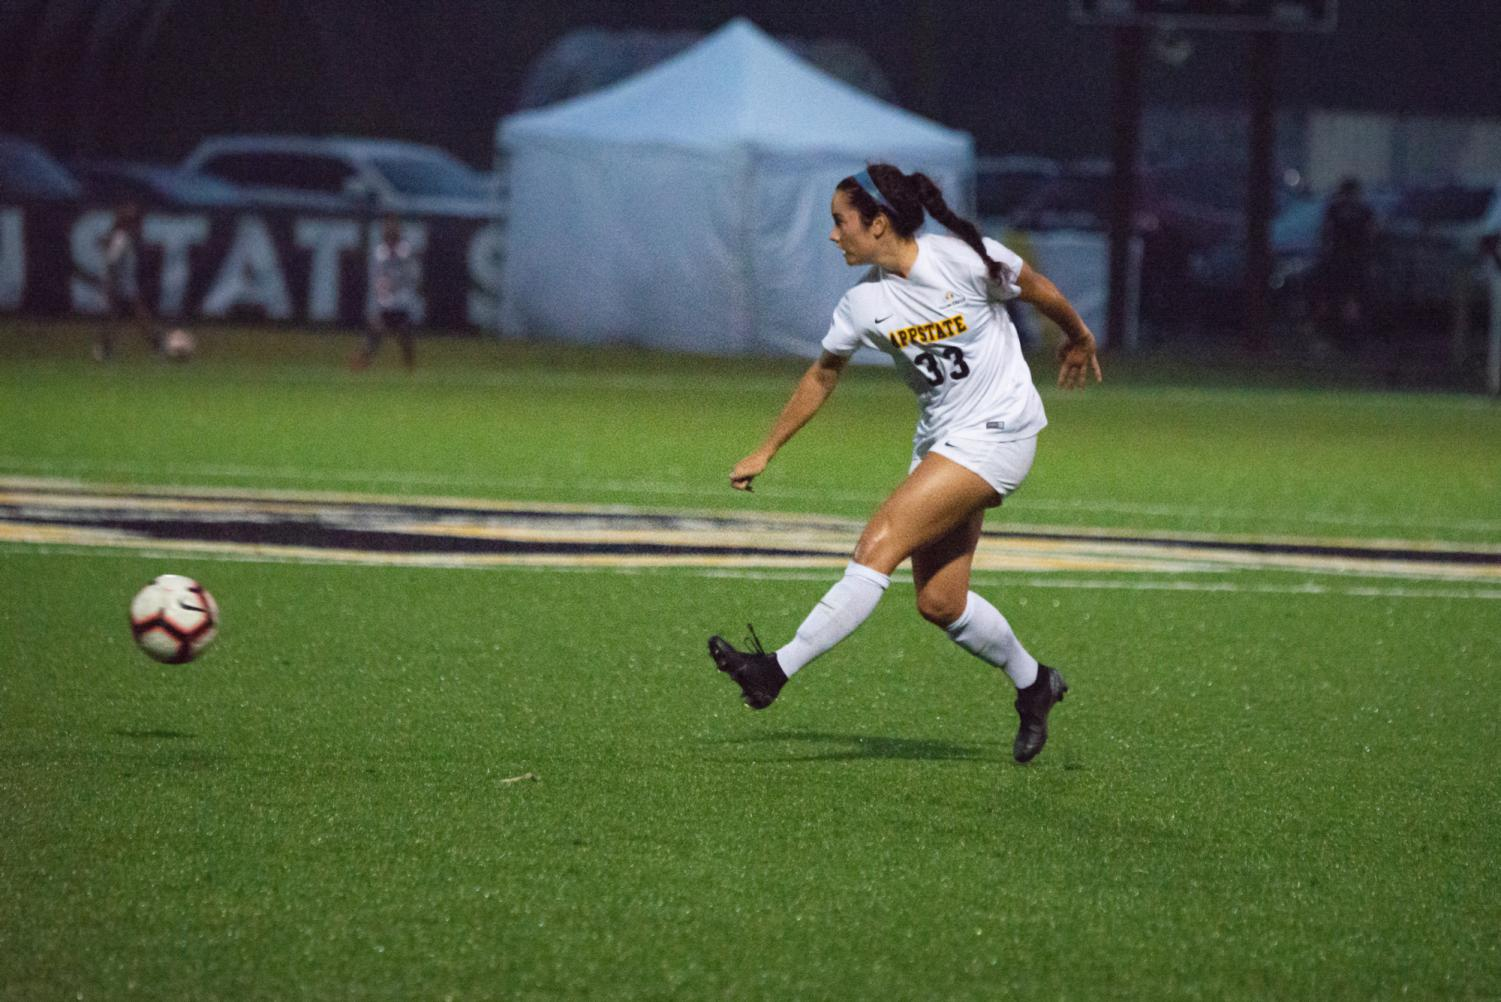 Freshman forward Liney Brantley passes the ball across midfield during App State's  2-1 win over FIU on Sept. 13.